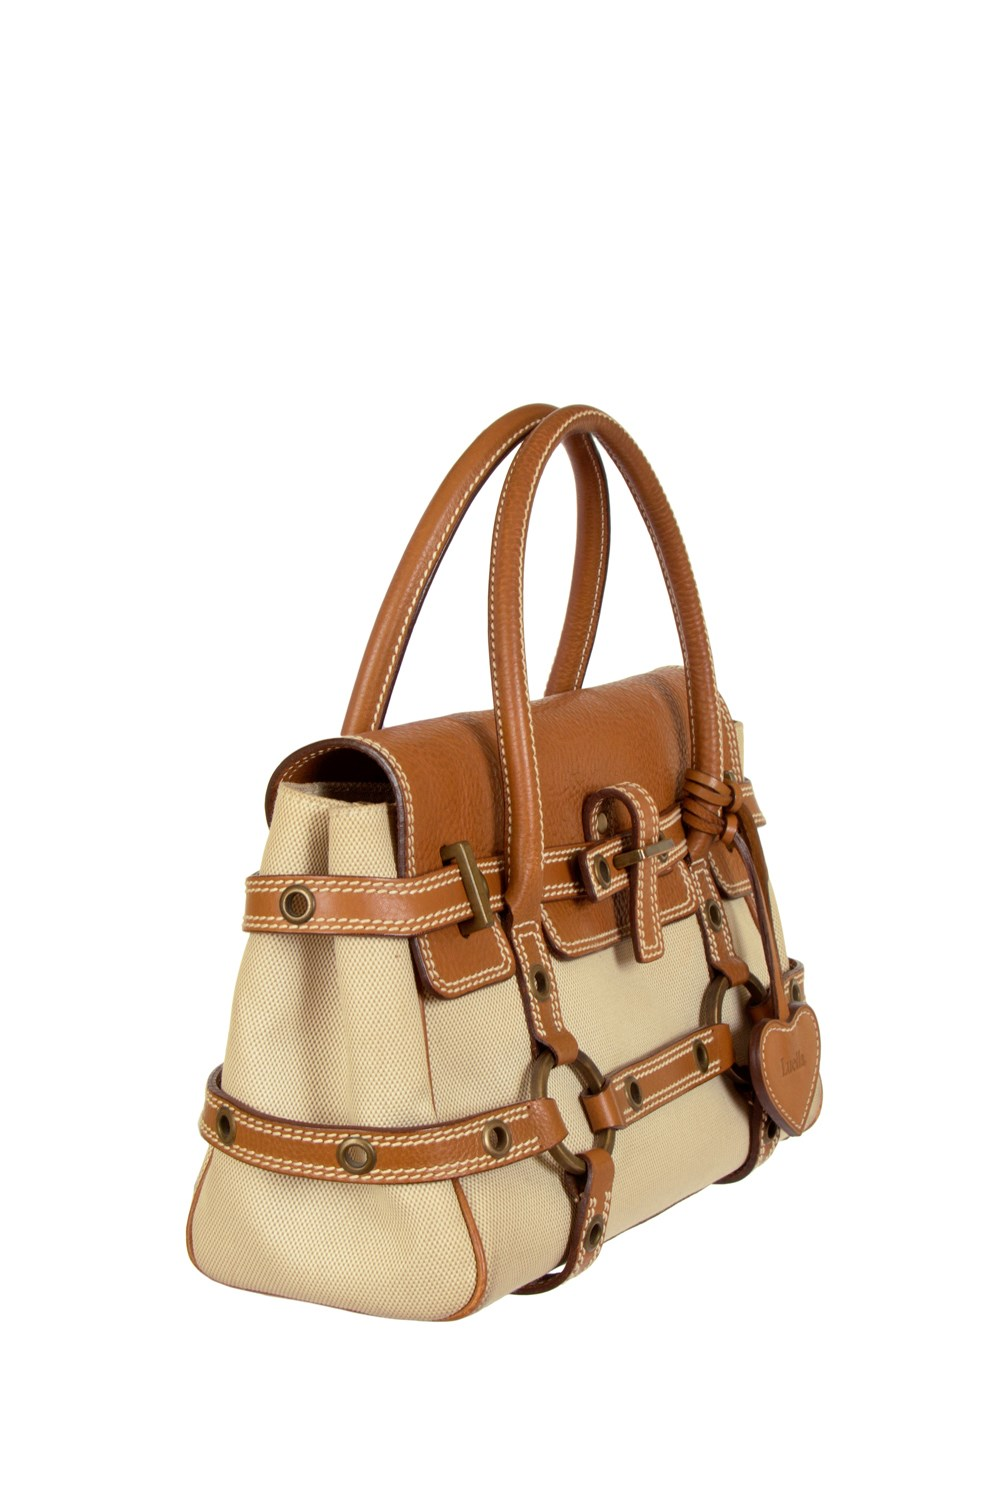 c37af4899f2d Gisele Beige and Tan Tote Bag